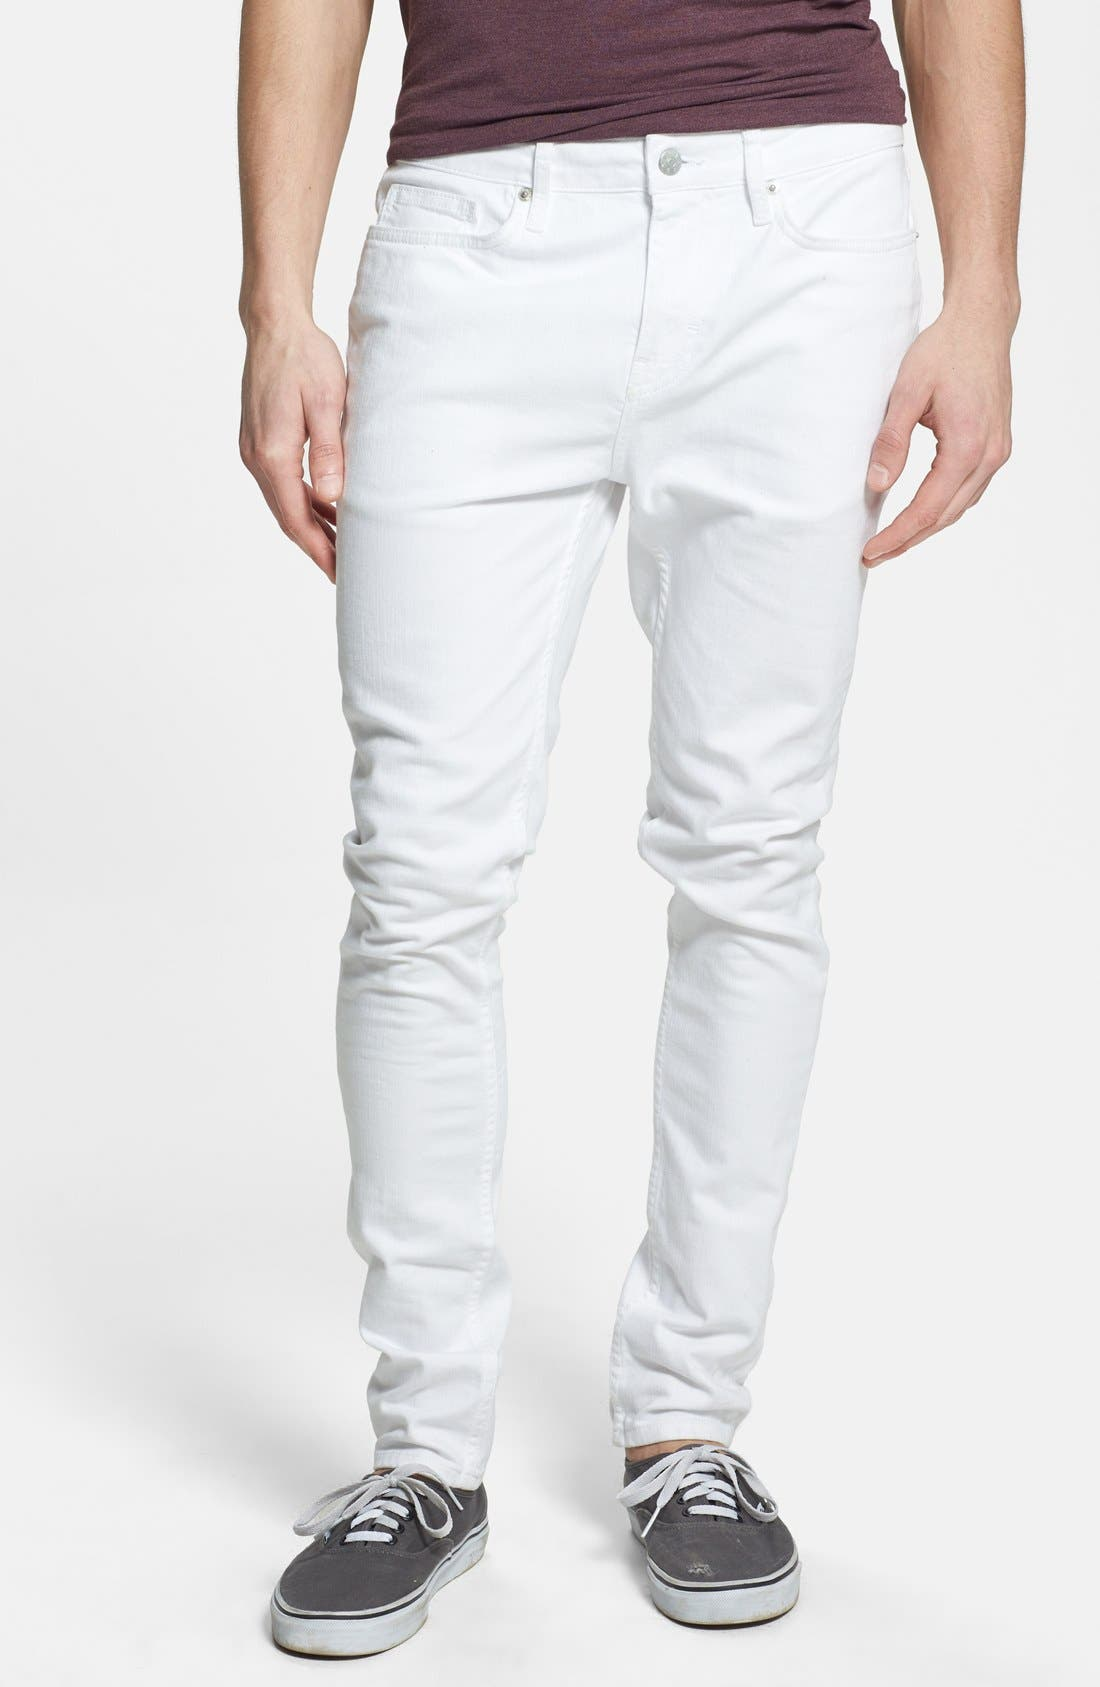 Stretch Skinny Fit Jeans,                         Main,                         color, 100